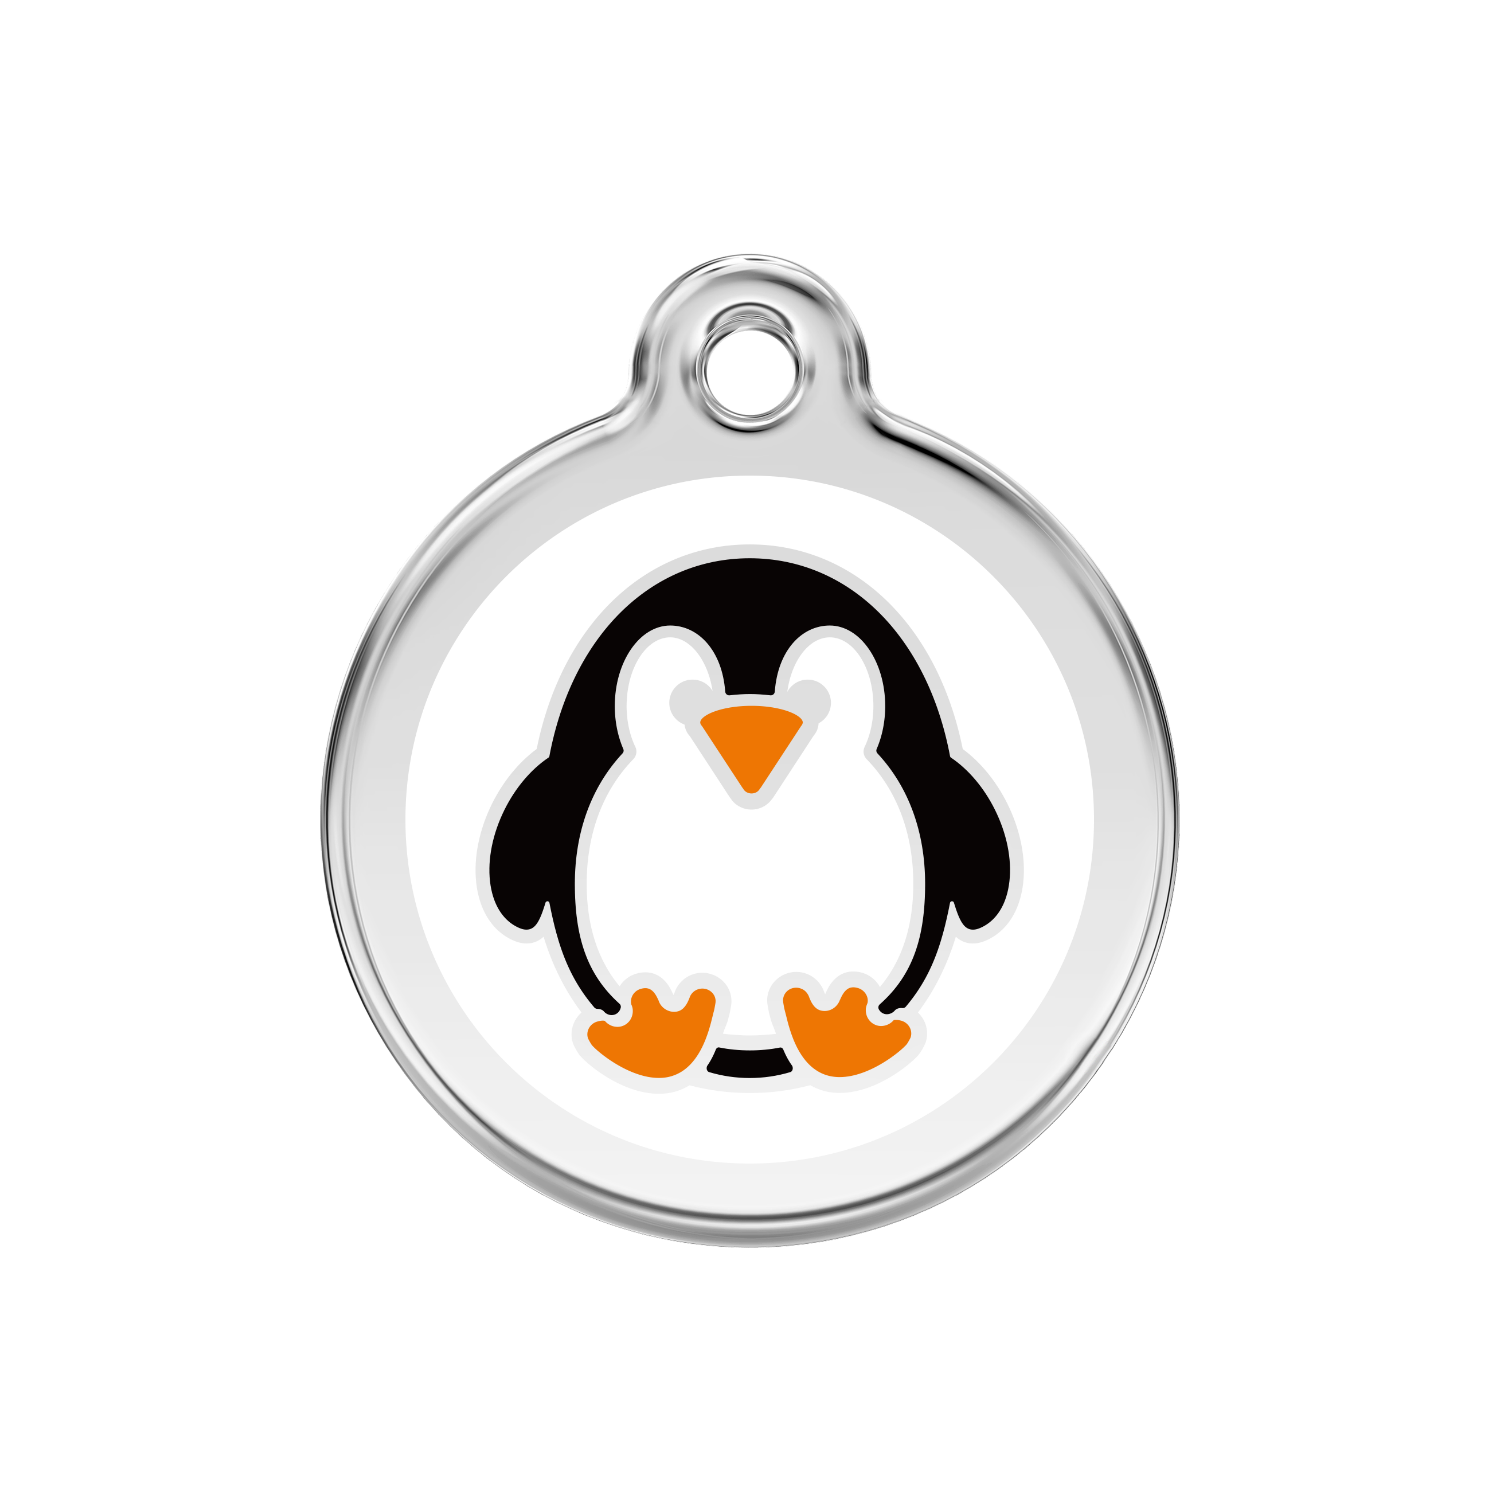 Penguin Medium Enamel & Stainless Steel Tag>